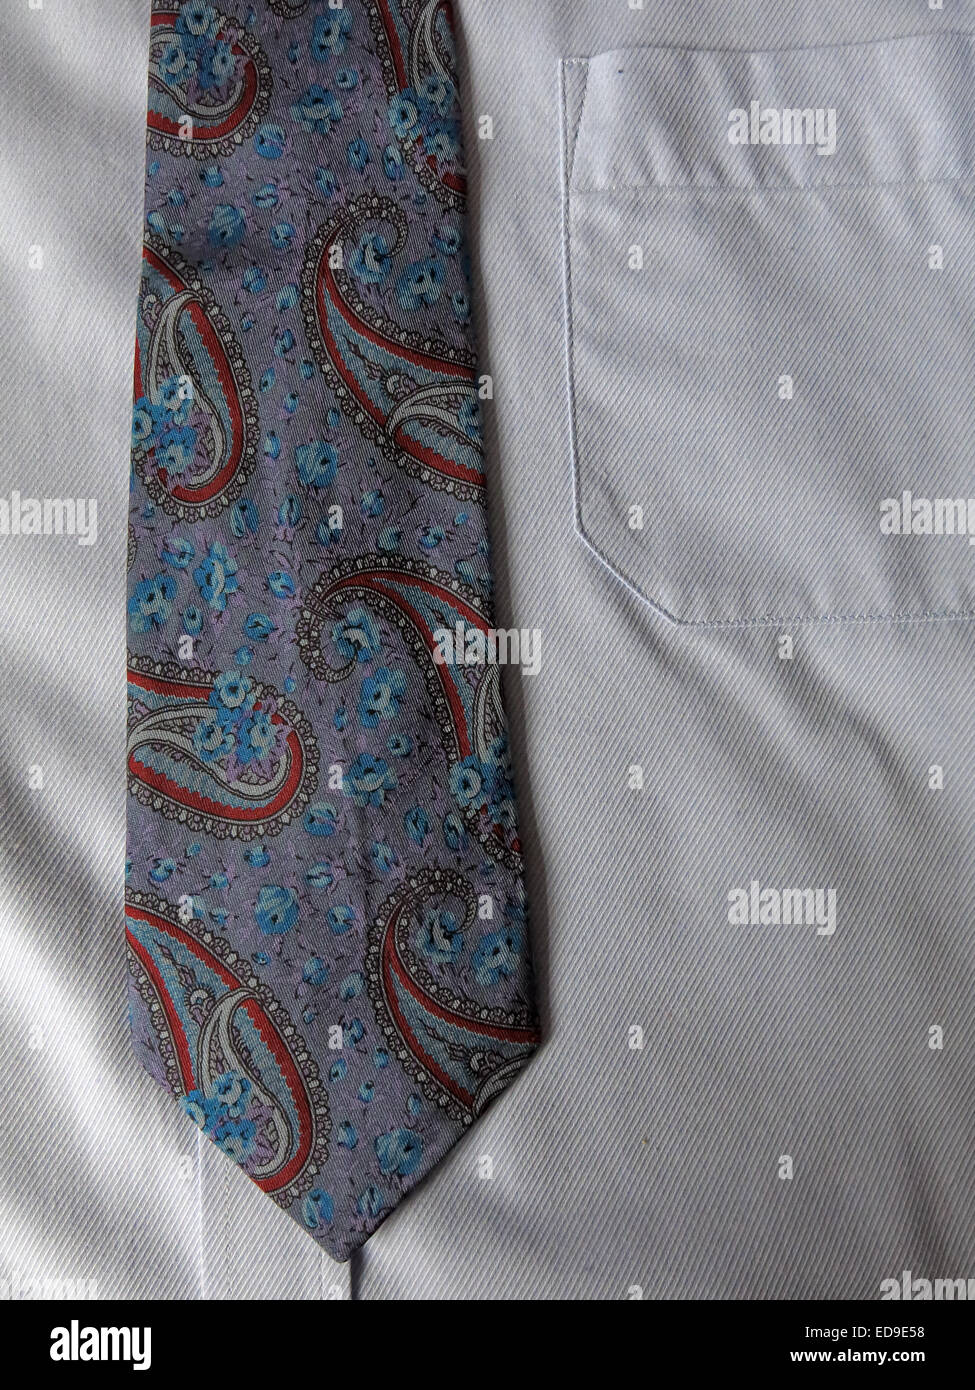 man mans 2nd hand second secondhand back front patterned,retro,selection,on,a,shirt,pattern,patterned,weave,weaving,material,fashion,business,office,apparel,US,English,fashionable,fabric,colour,coloured,colored,label,slim,wide,kipper,designer,uniform,school,casual,cotton,polyester,Austin,Reed,1970,gotonysmith,close,up,close-up,macro,mode,moda,textile,1970s,70s,Cue,paisley,accessory,bow,business,businessman,cloth,clothes,clothing,collar,corporate,cravat,cute,design,designer,dress,elegance,elegant,fabric,fashion,fashionable,formal,garments,knot modern ascot tie,bow tie,bolo tie,zipper tie,cravat and clip-on tie